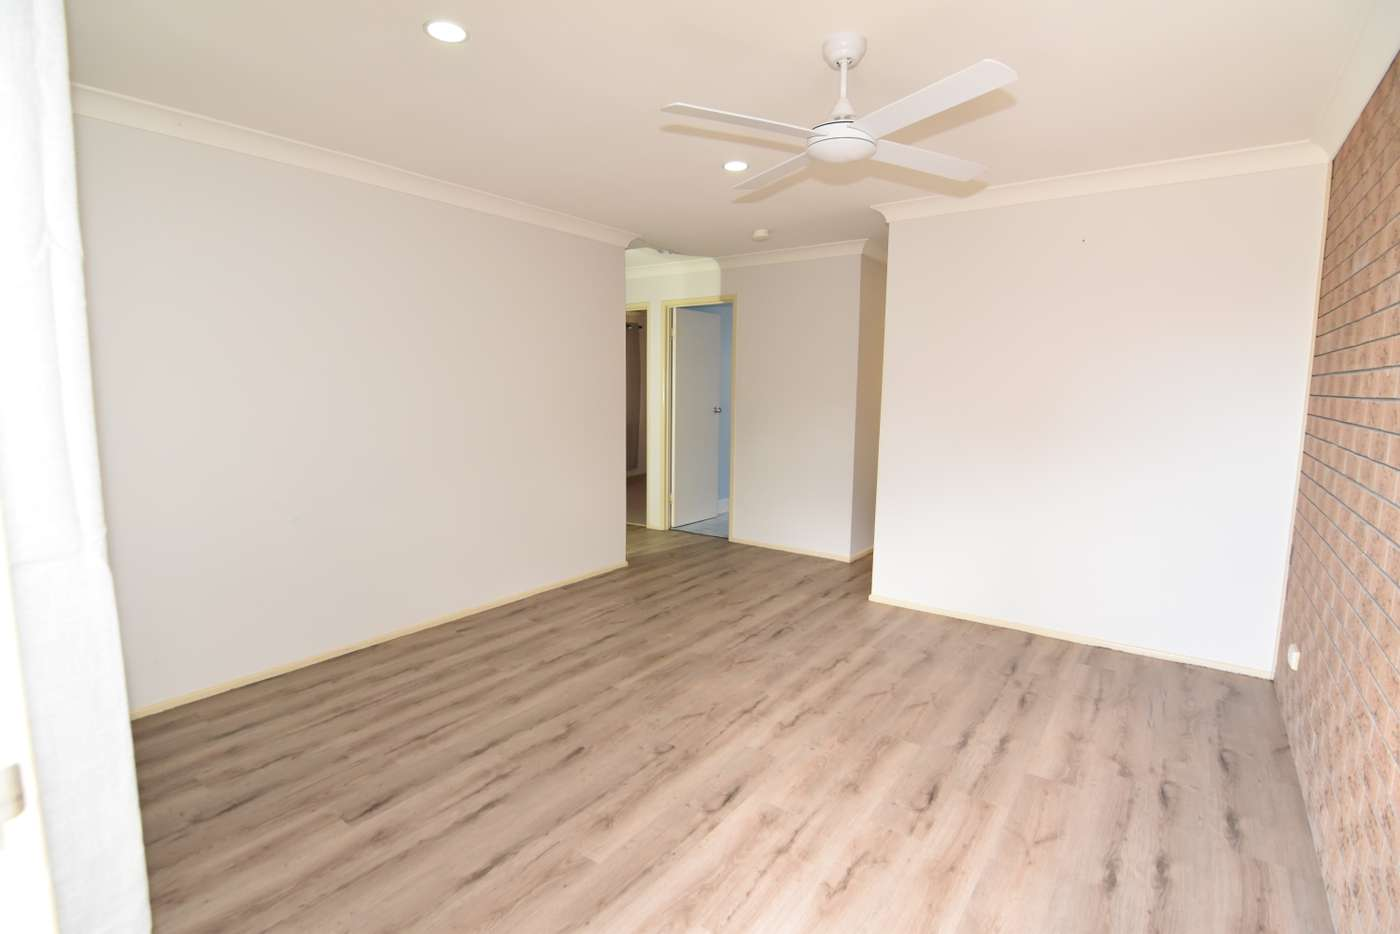 Seventh view of Homely house listing, 1/15 LANCEWOOD STREET, Algester QLD 4115